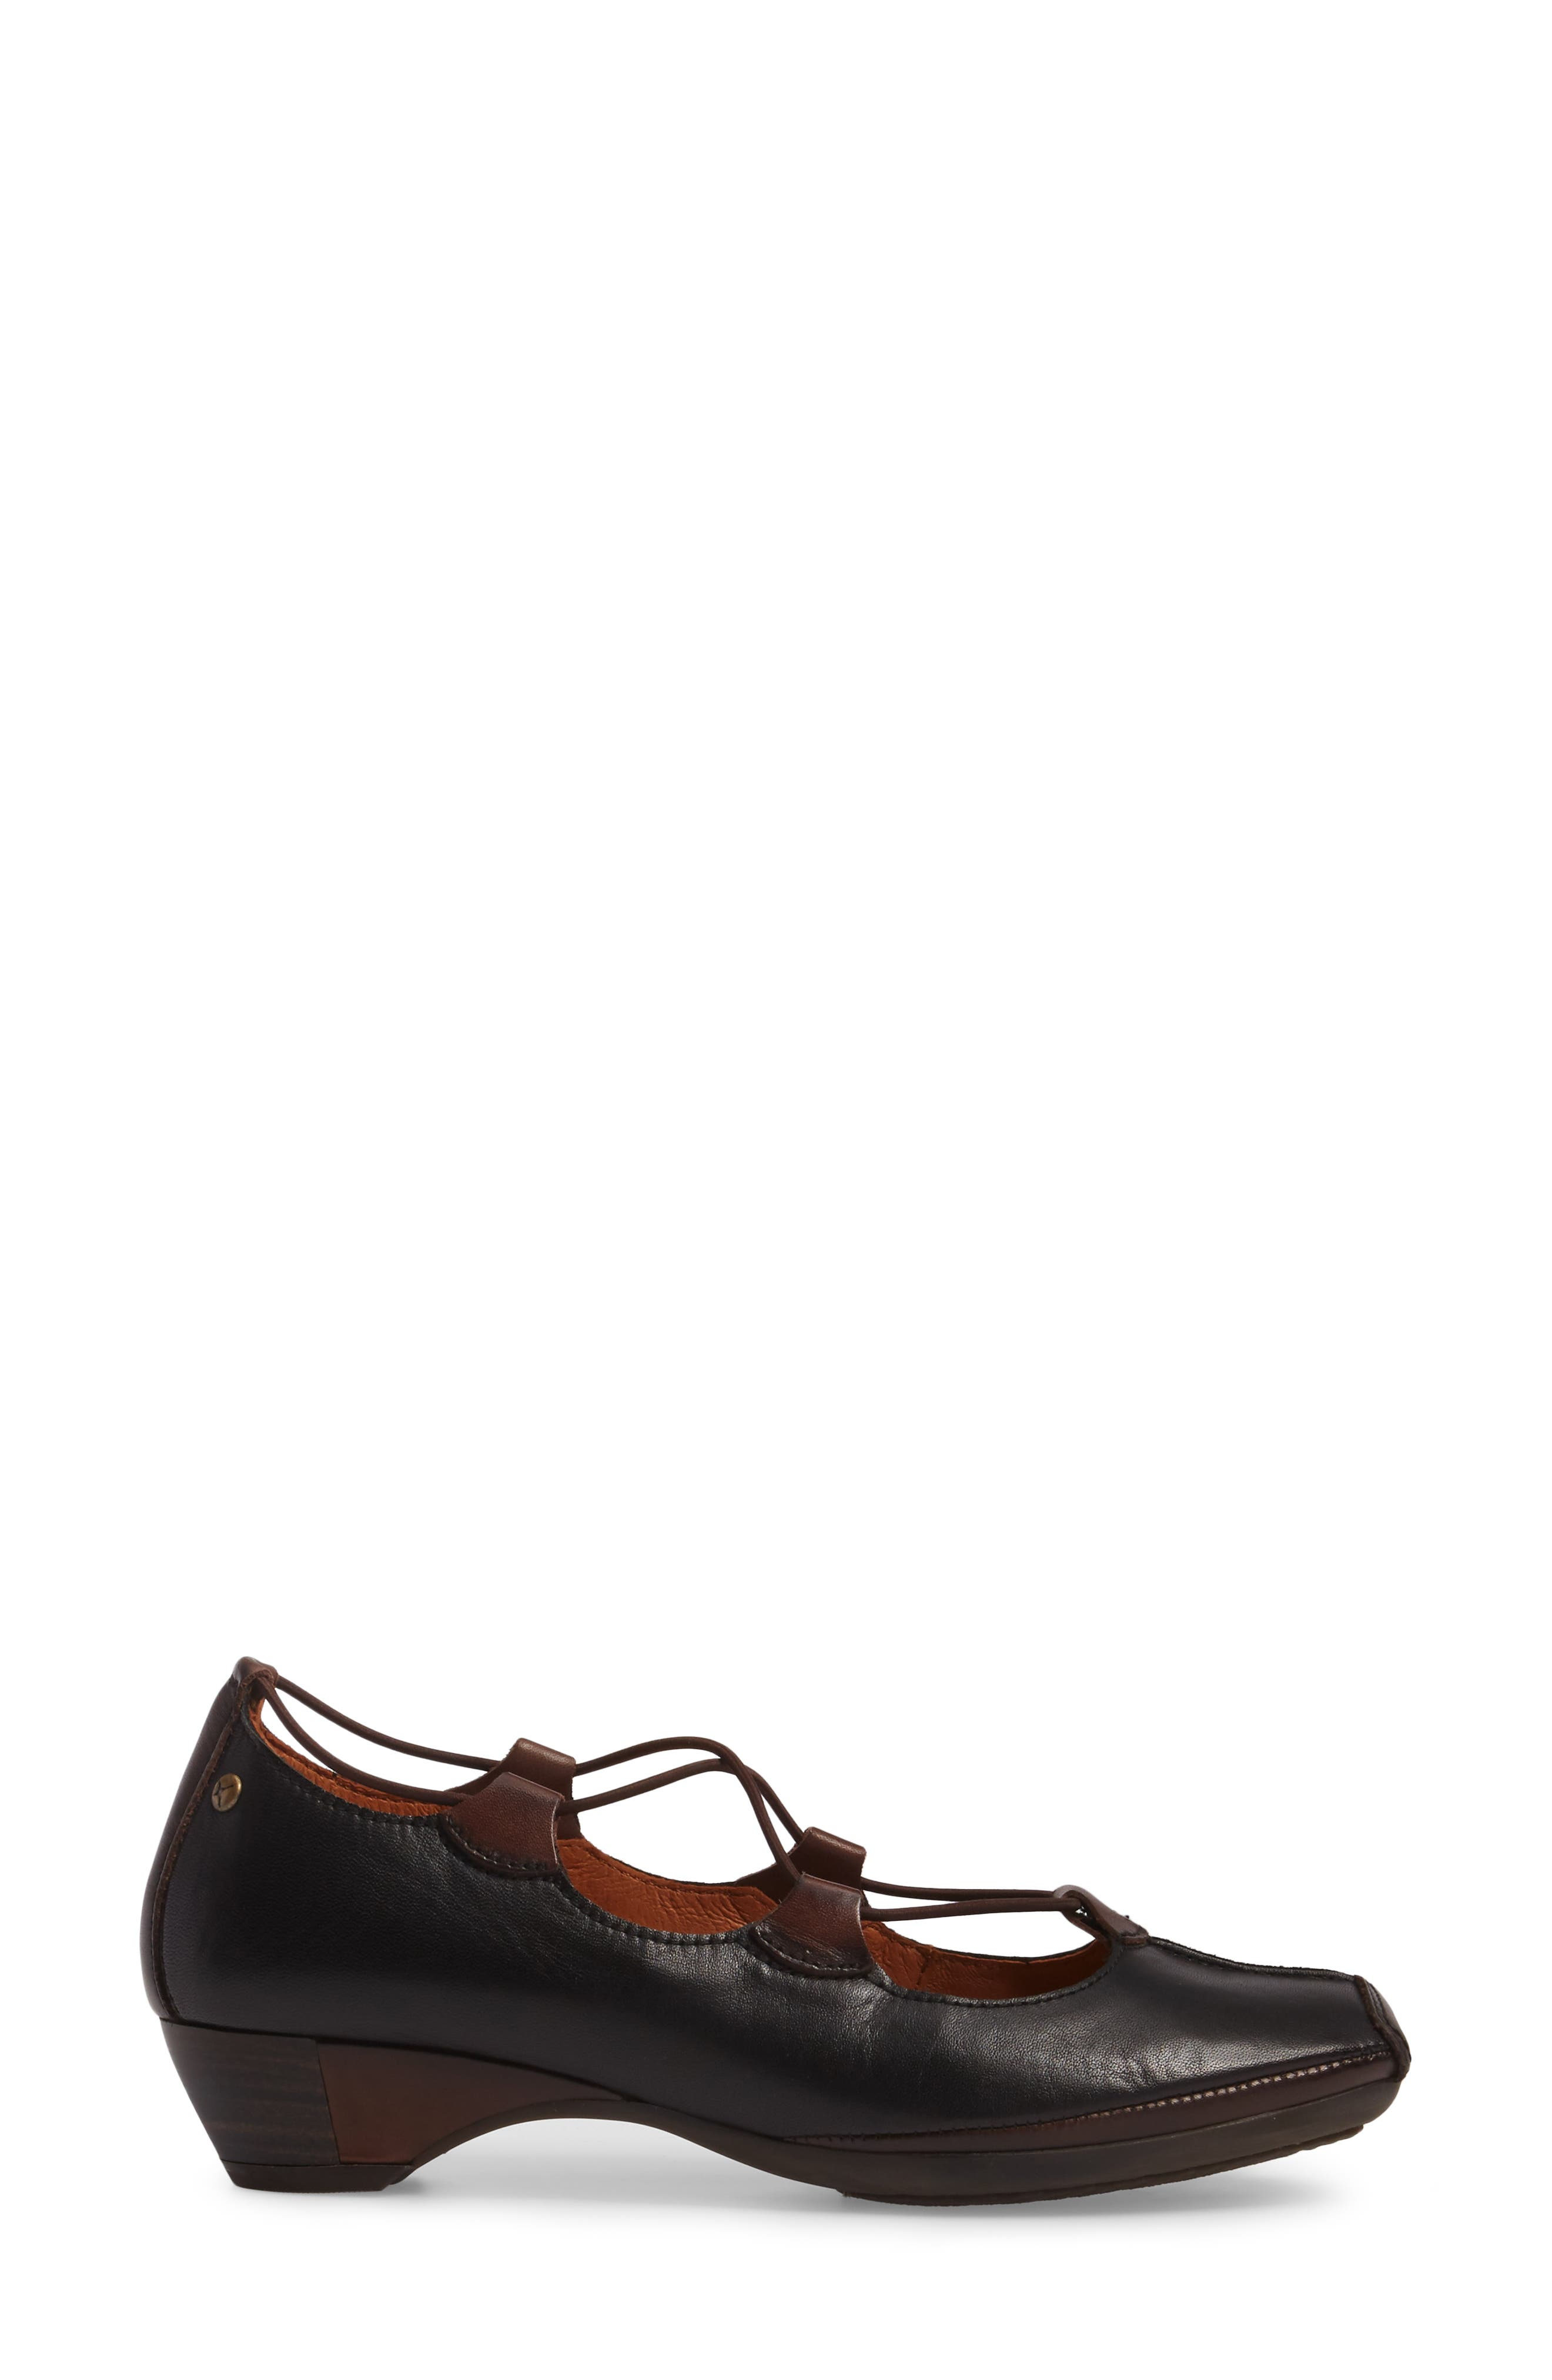 Gandia Lace-Up Pump,                             Alternate thumbnail 3, color,                             BLACK OLMO LEATHER